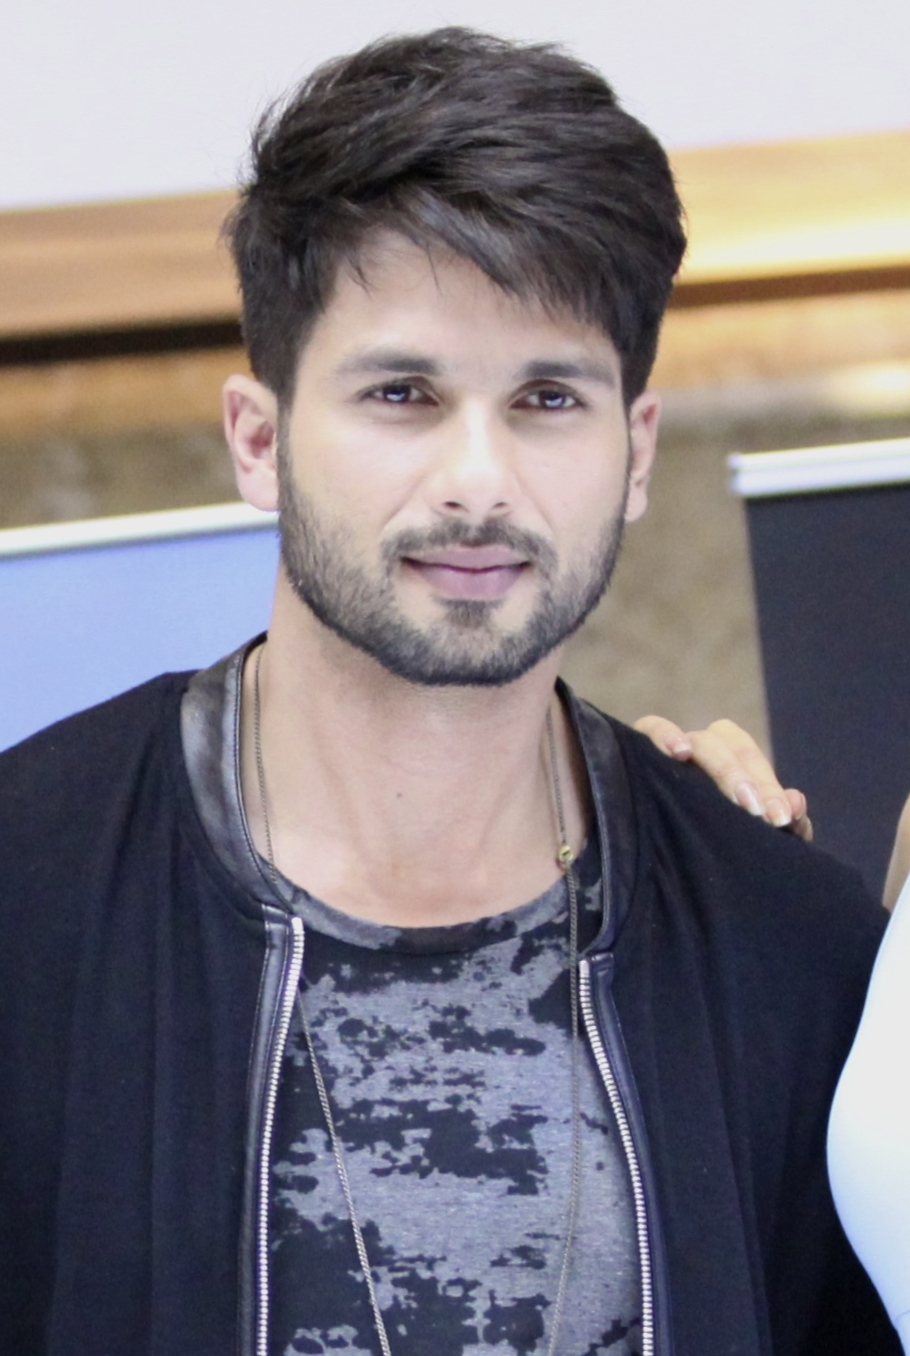 Shahid Kapoor Hd Wallpapersjpg Hd Wallpapers Hd Images Hd Pictures